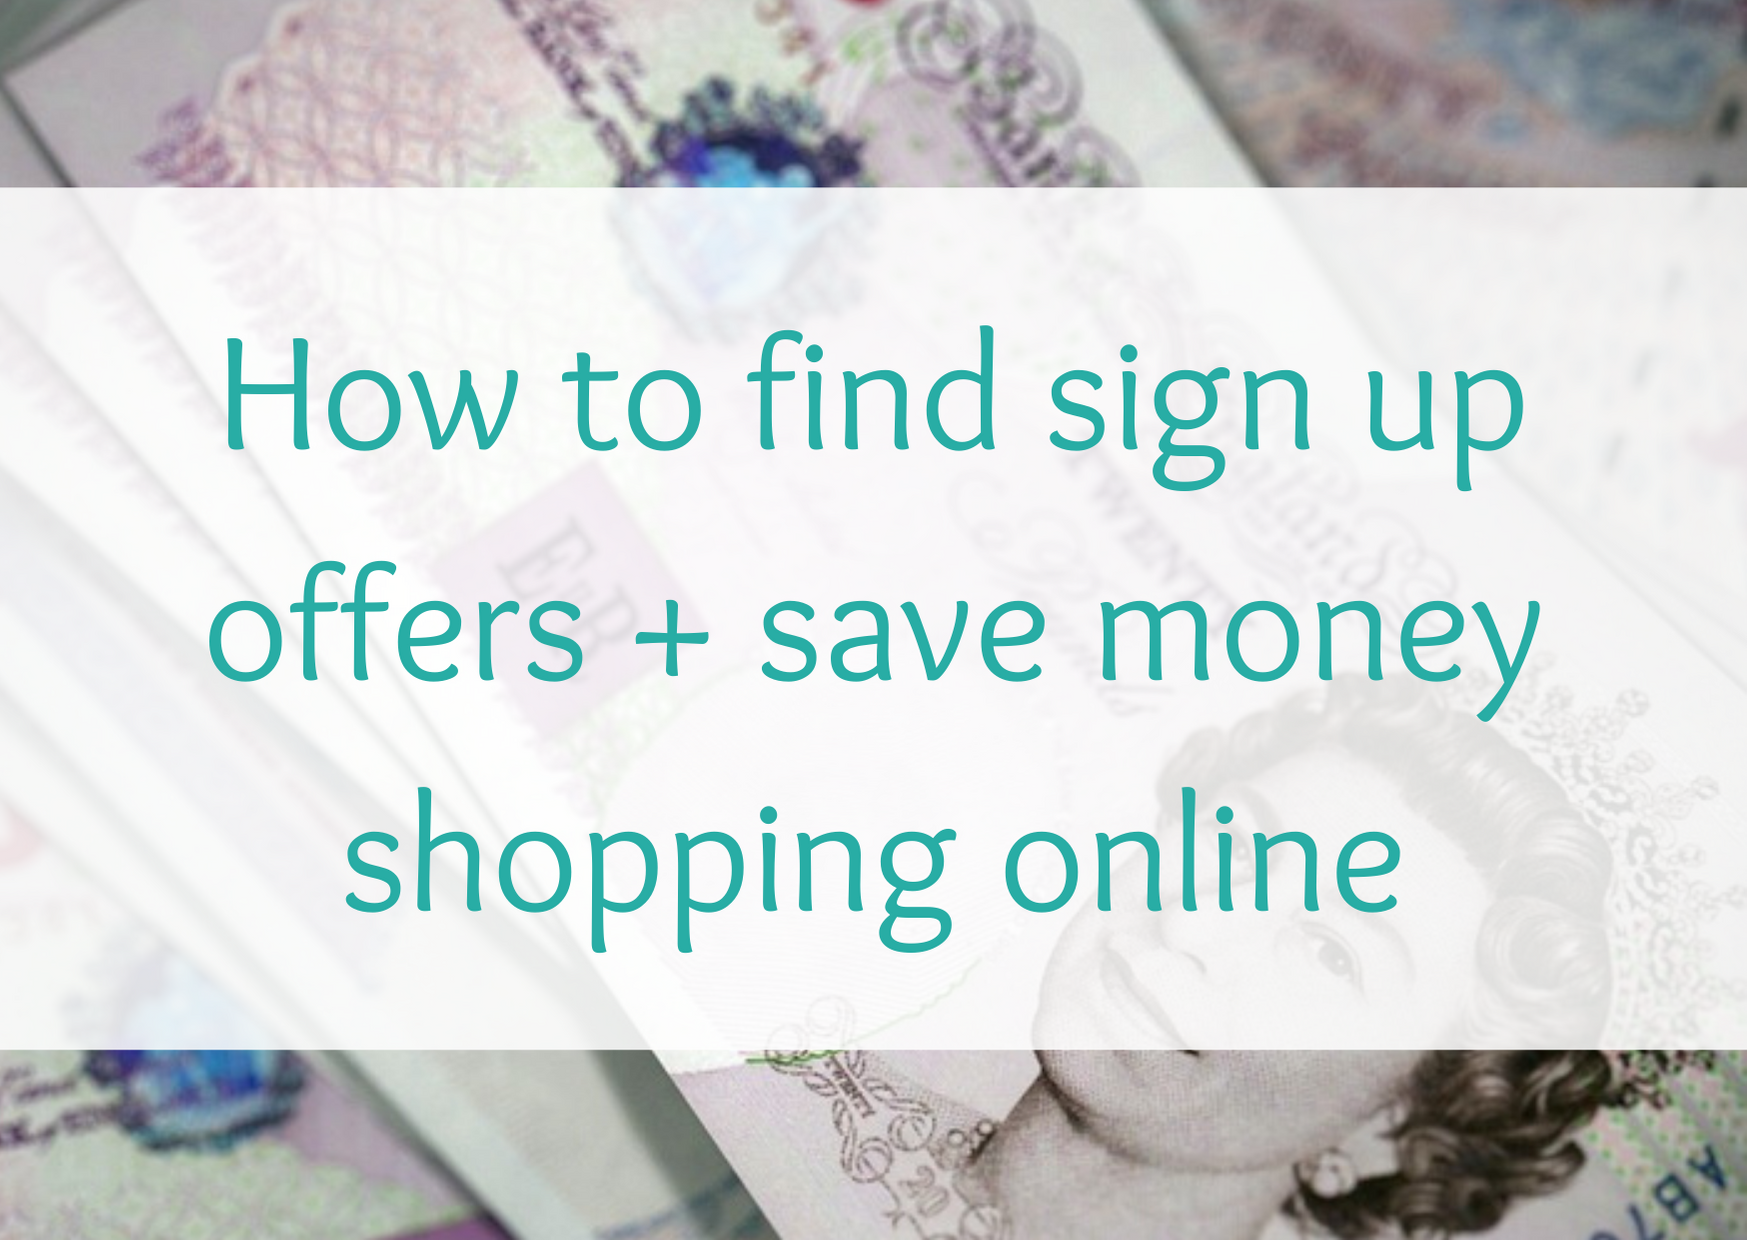 How to find new customer sign up offers + save money shopping online